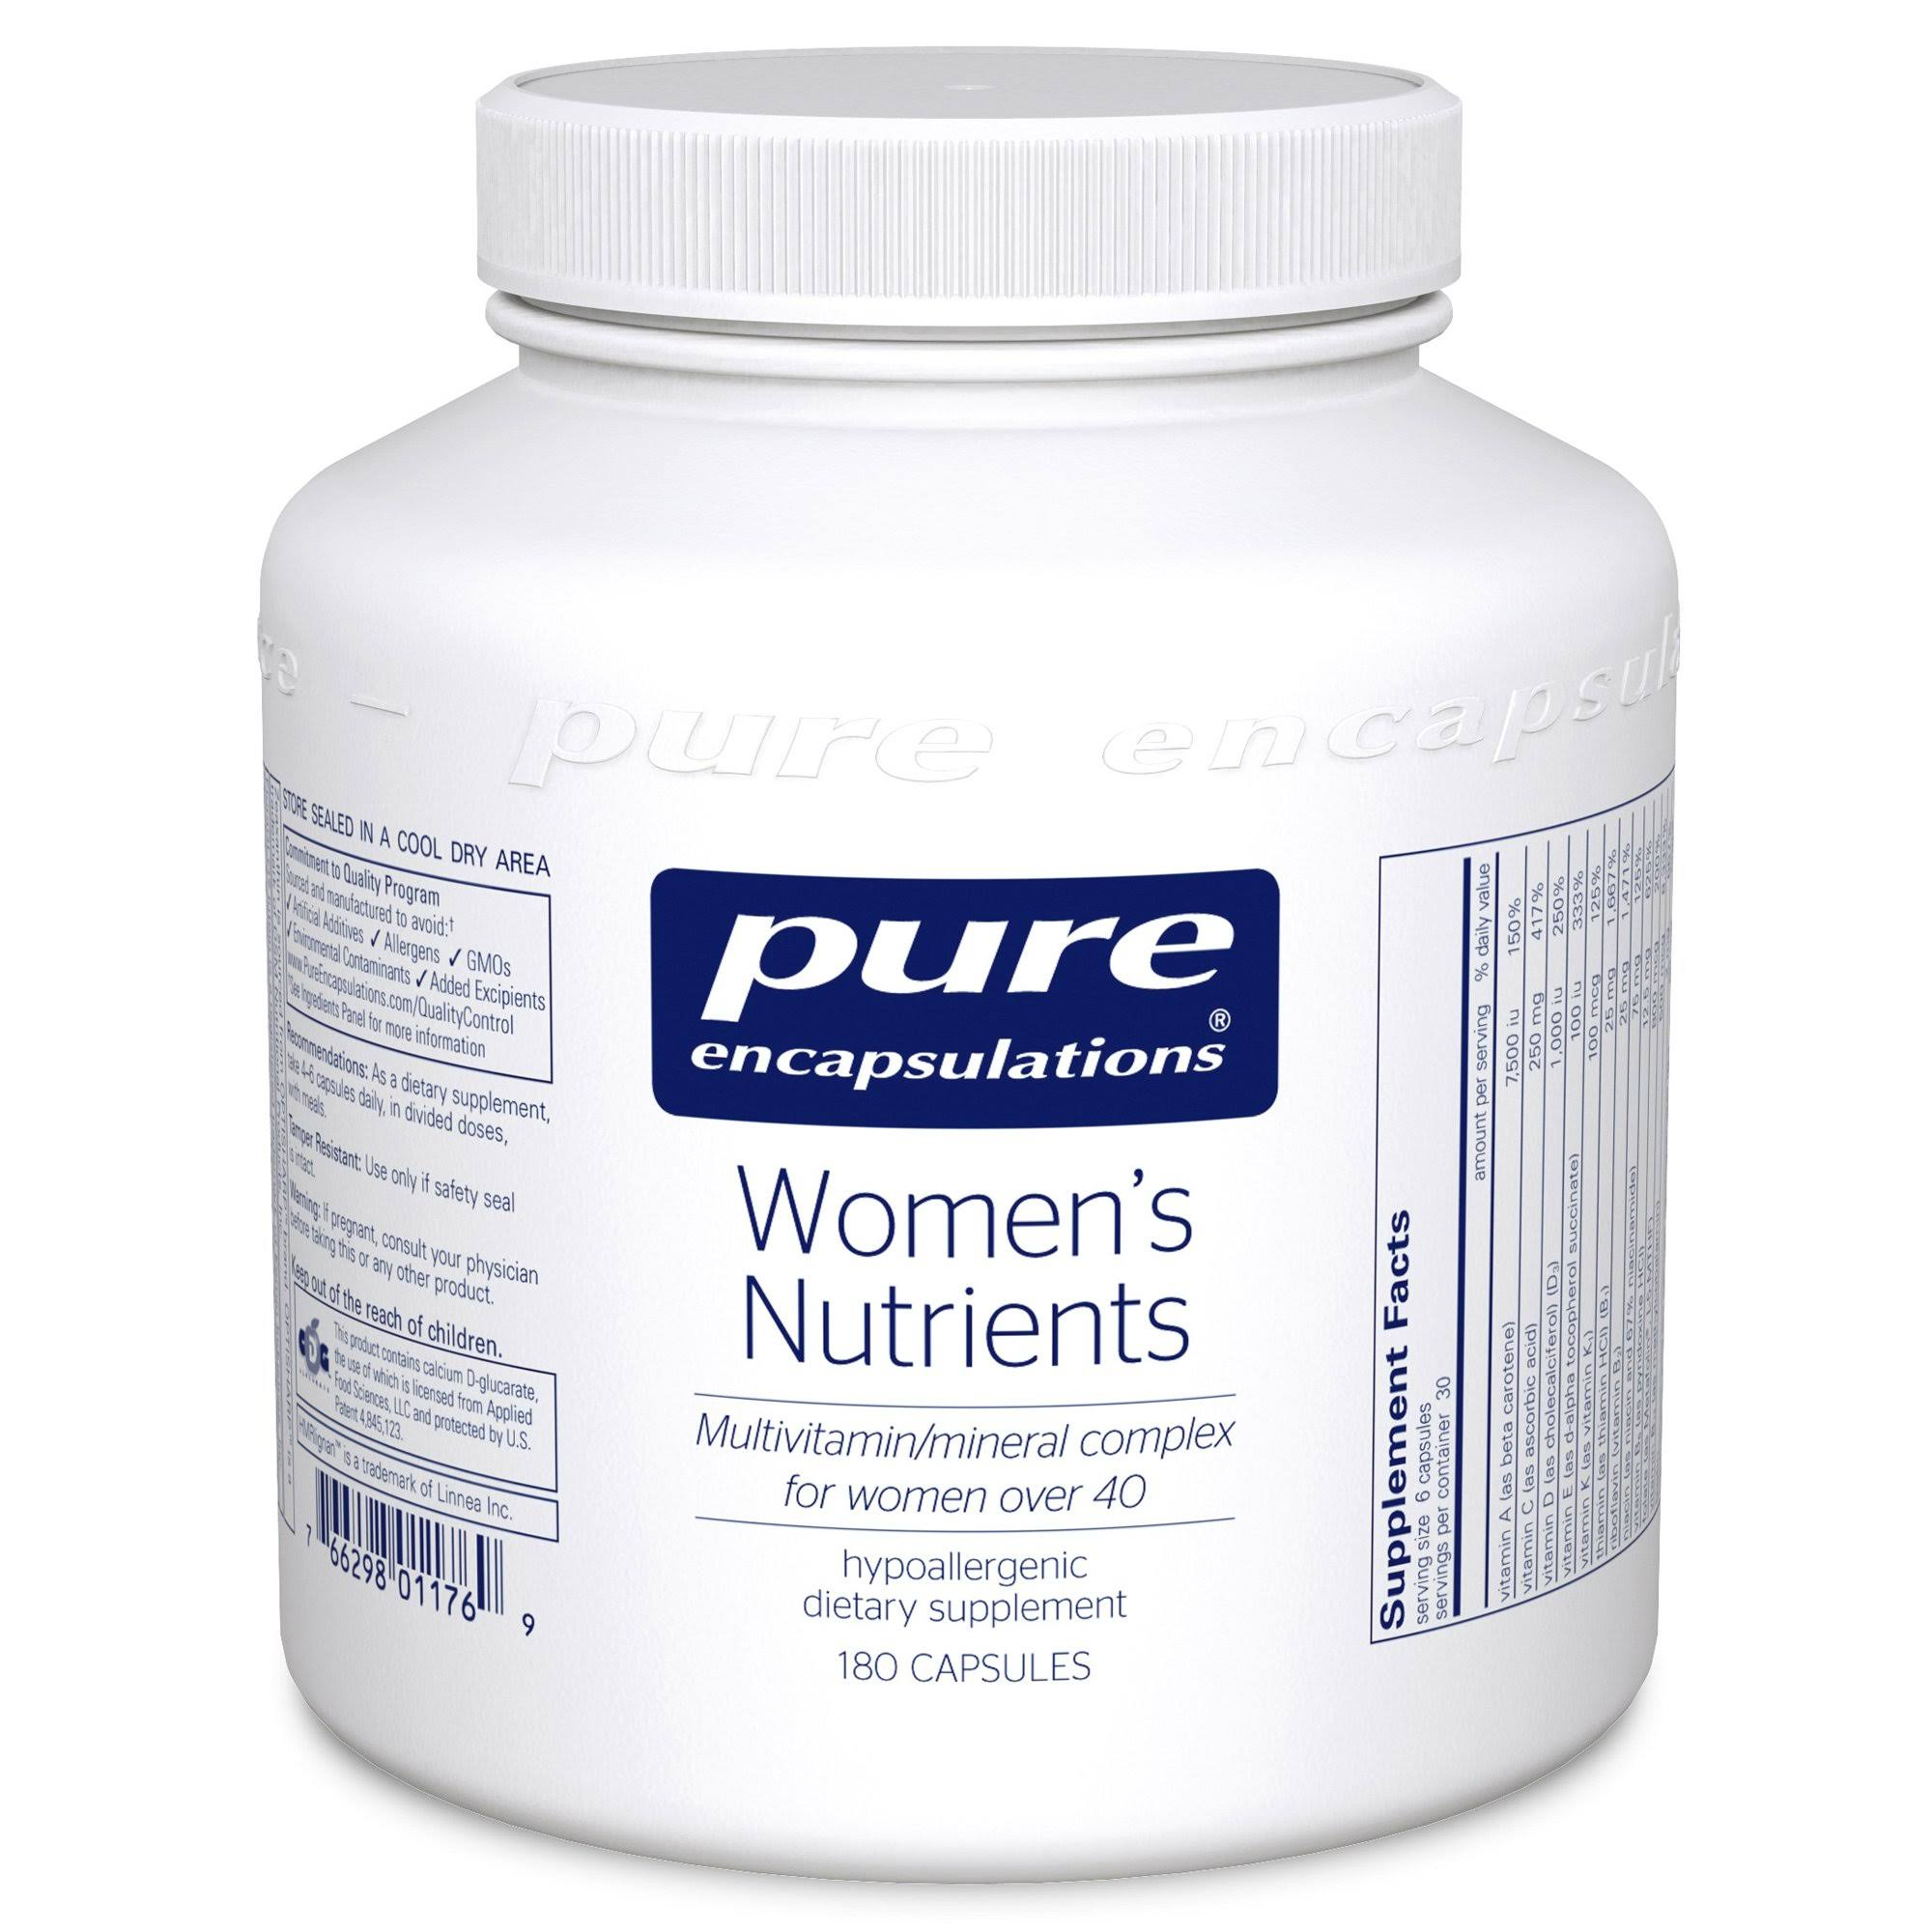 Pure Encapsulations - Women's Nutrients - 180 Capsules